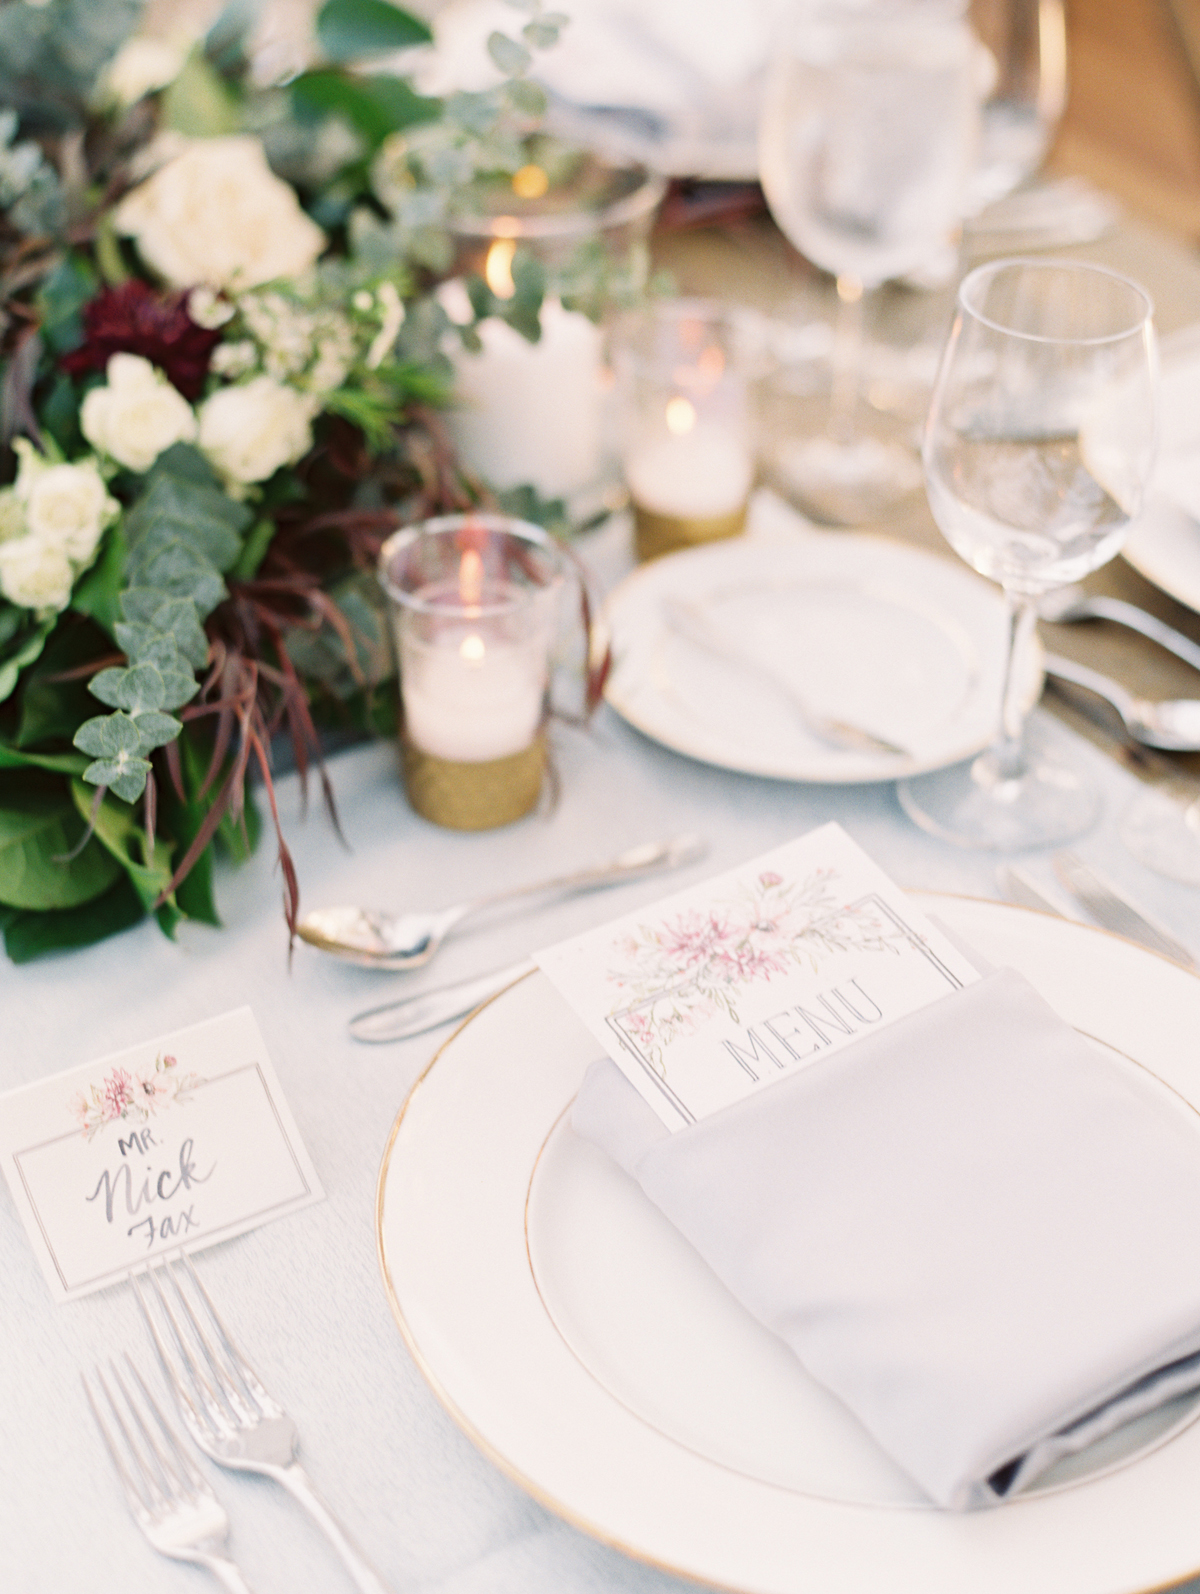 menu and place card with floral details